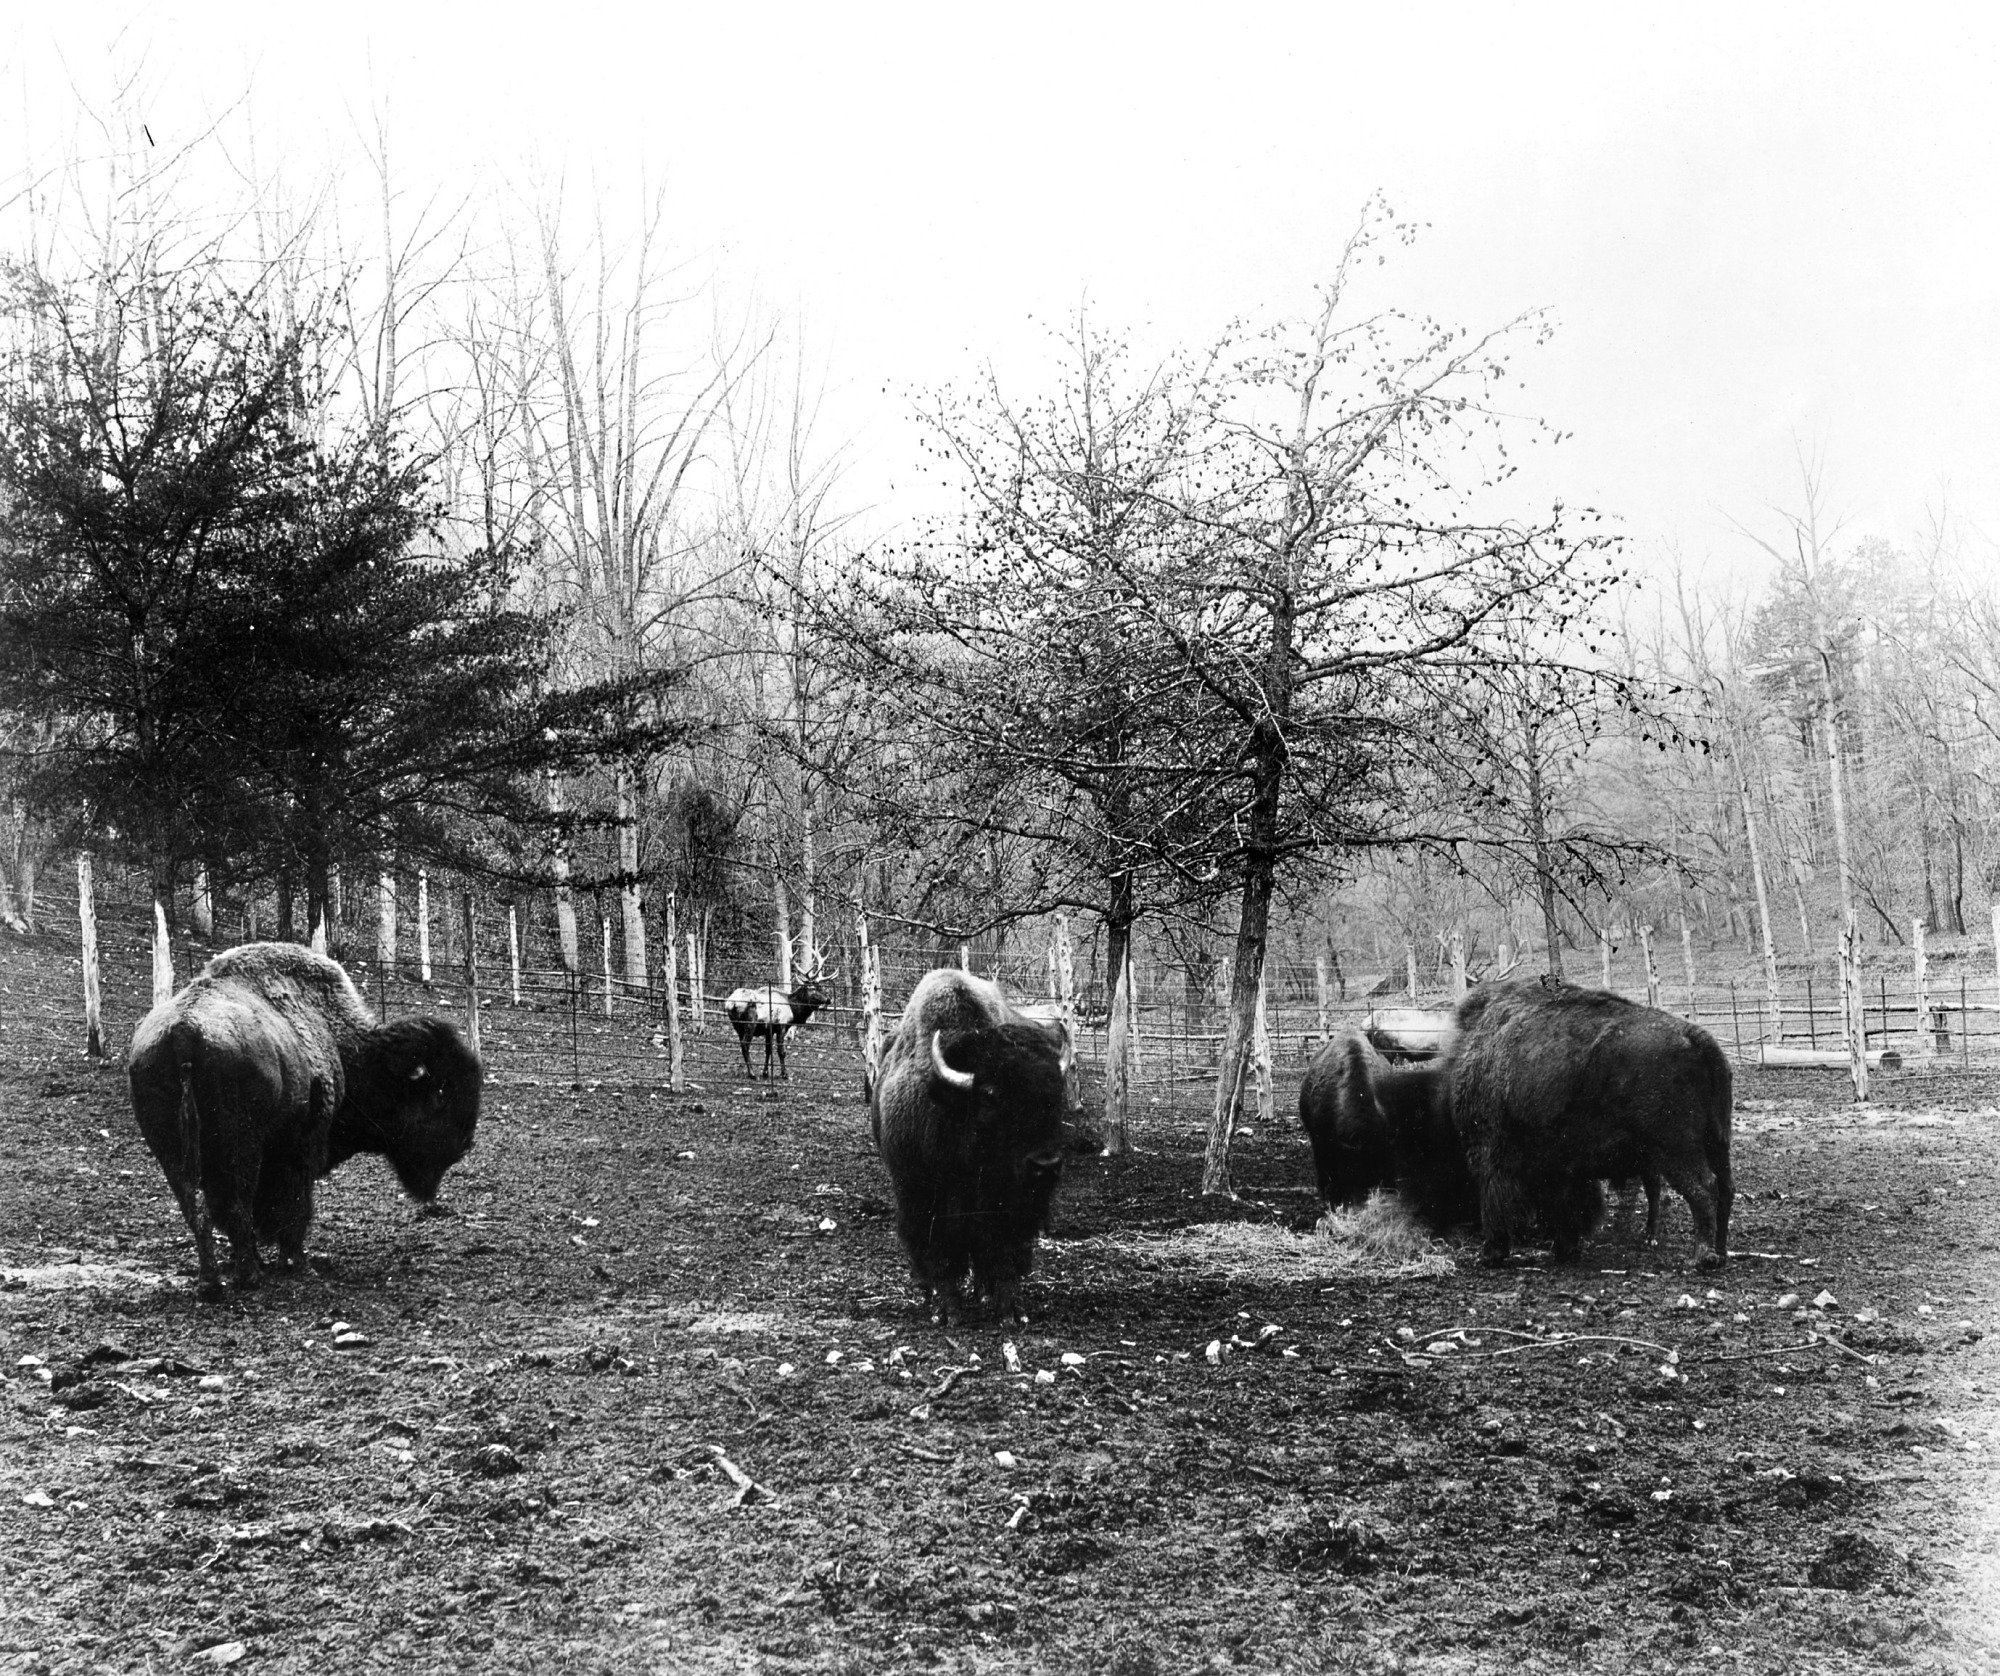 Preview of Buffalo at the National Zoological Park, 1890s